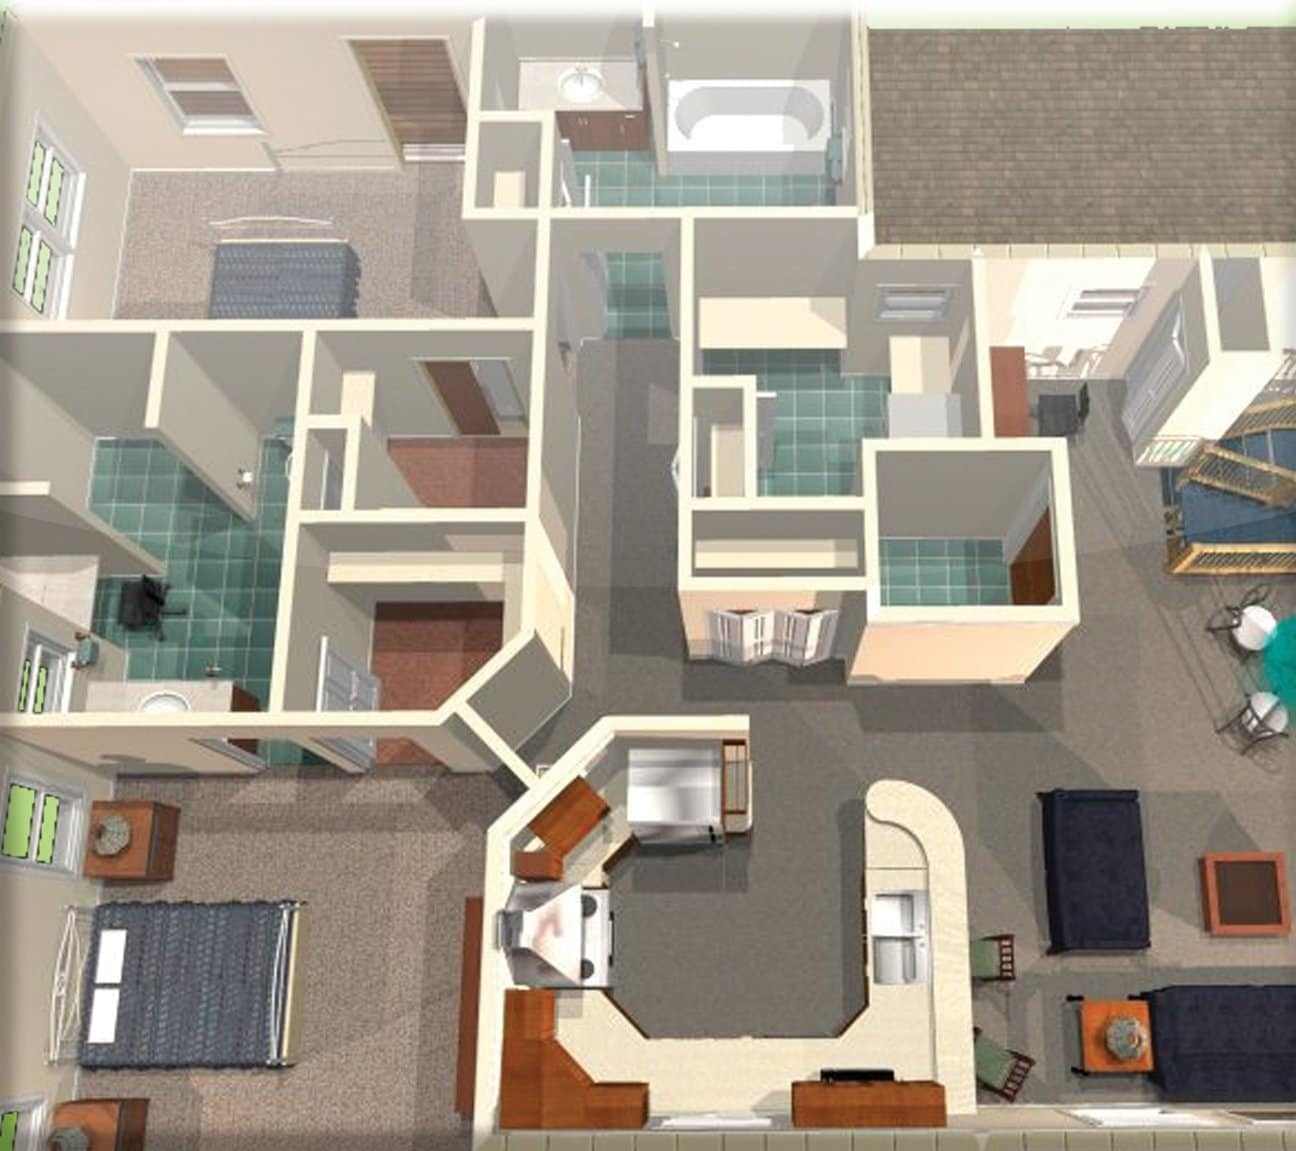 House design software download free - Part 2 2 Turbofloorplan Landscape Deluxe Design Software